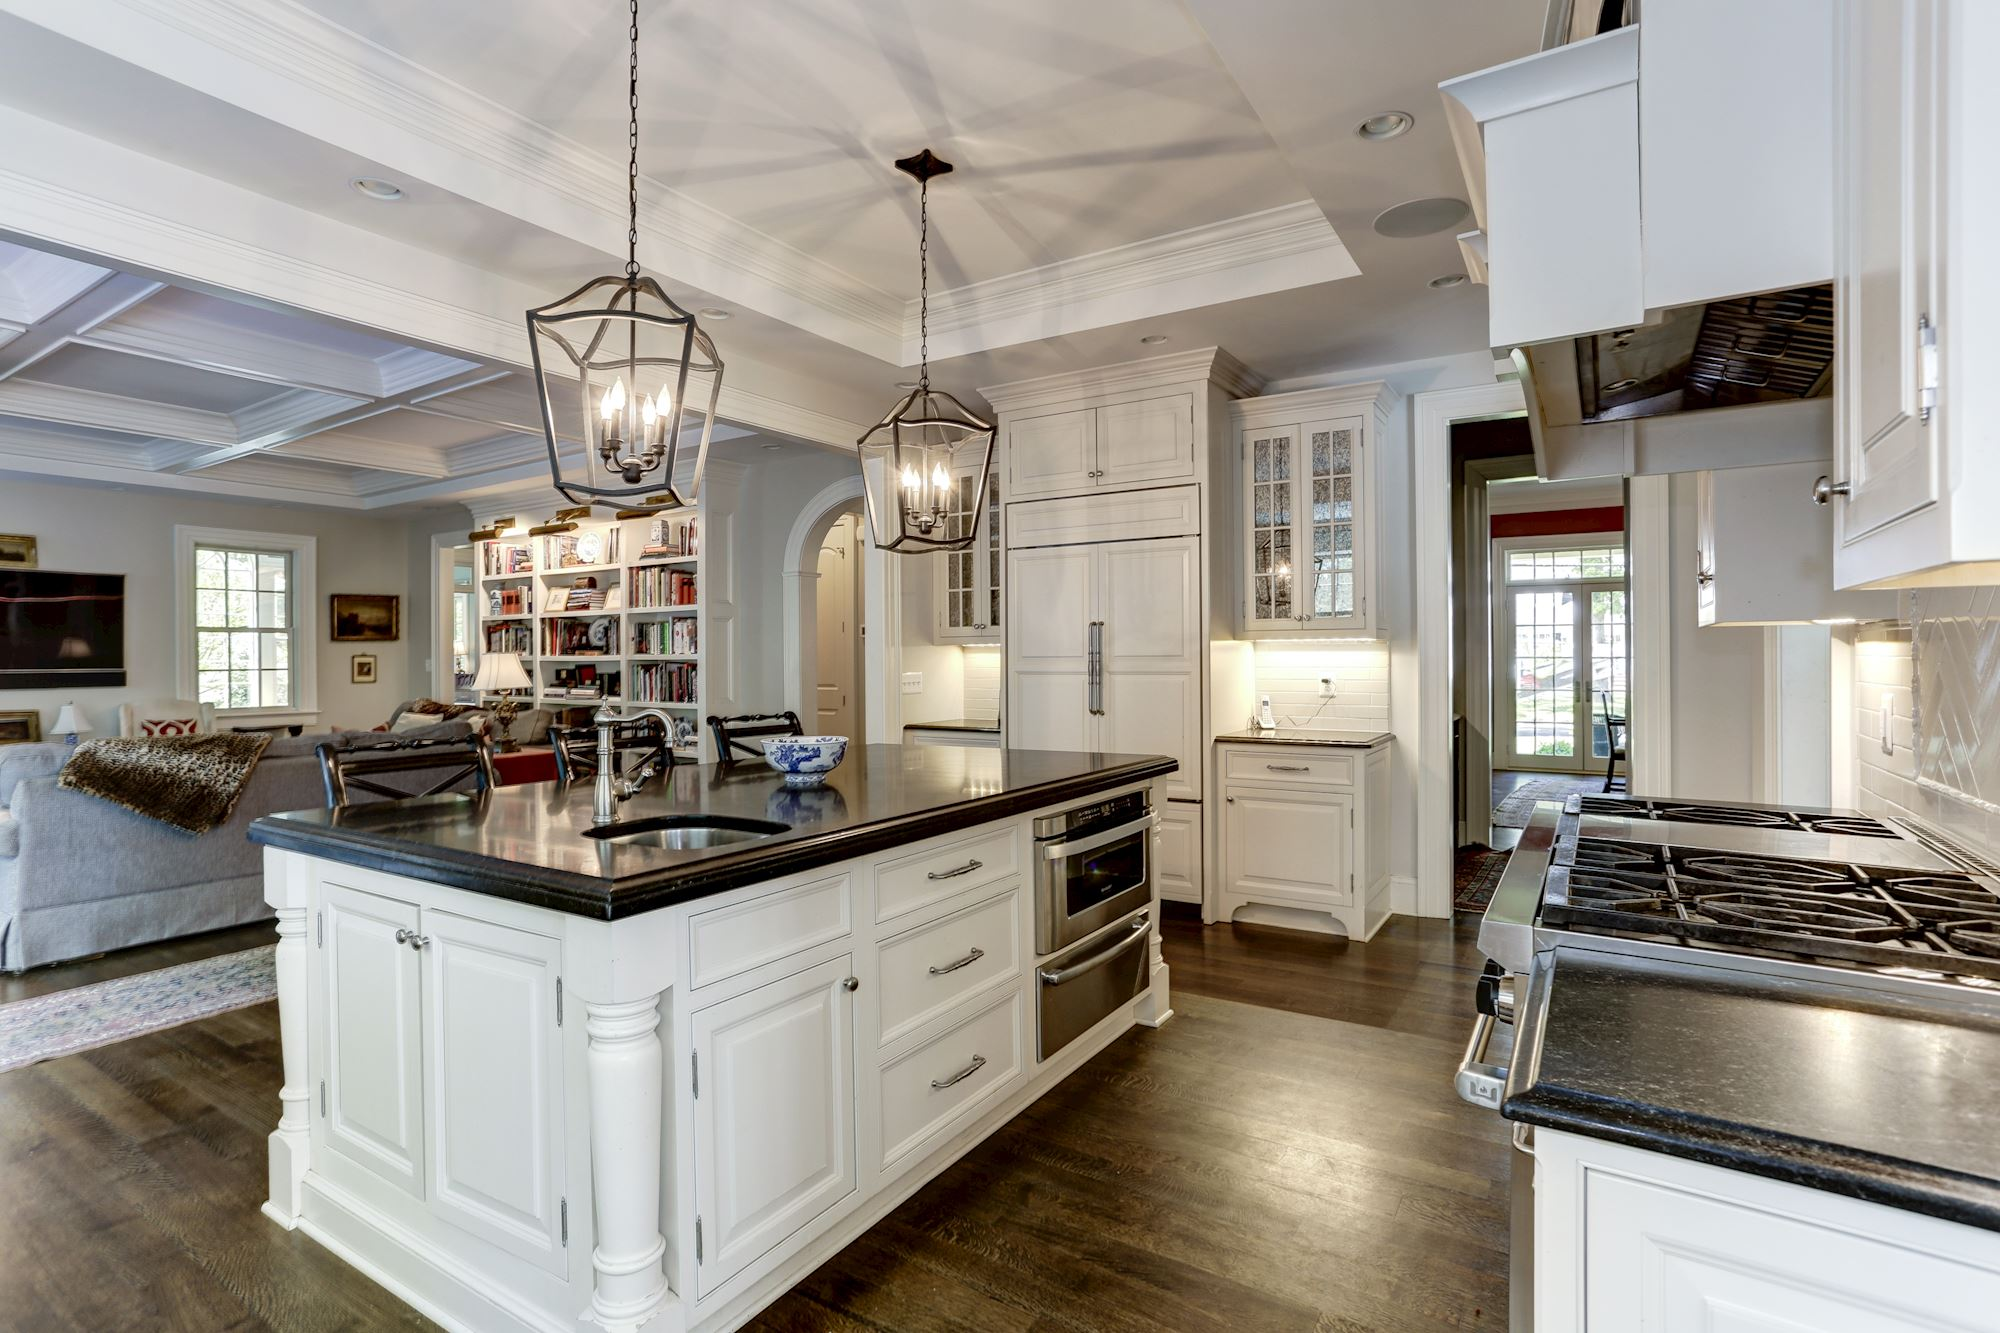 GREATJONES-WOODLEY-KITCHEN-2.jpg